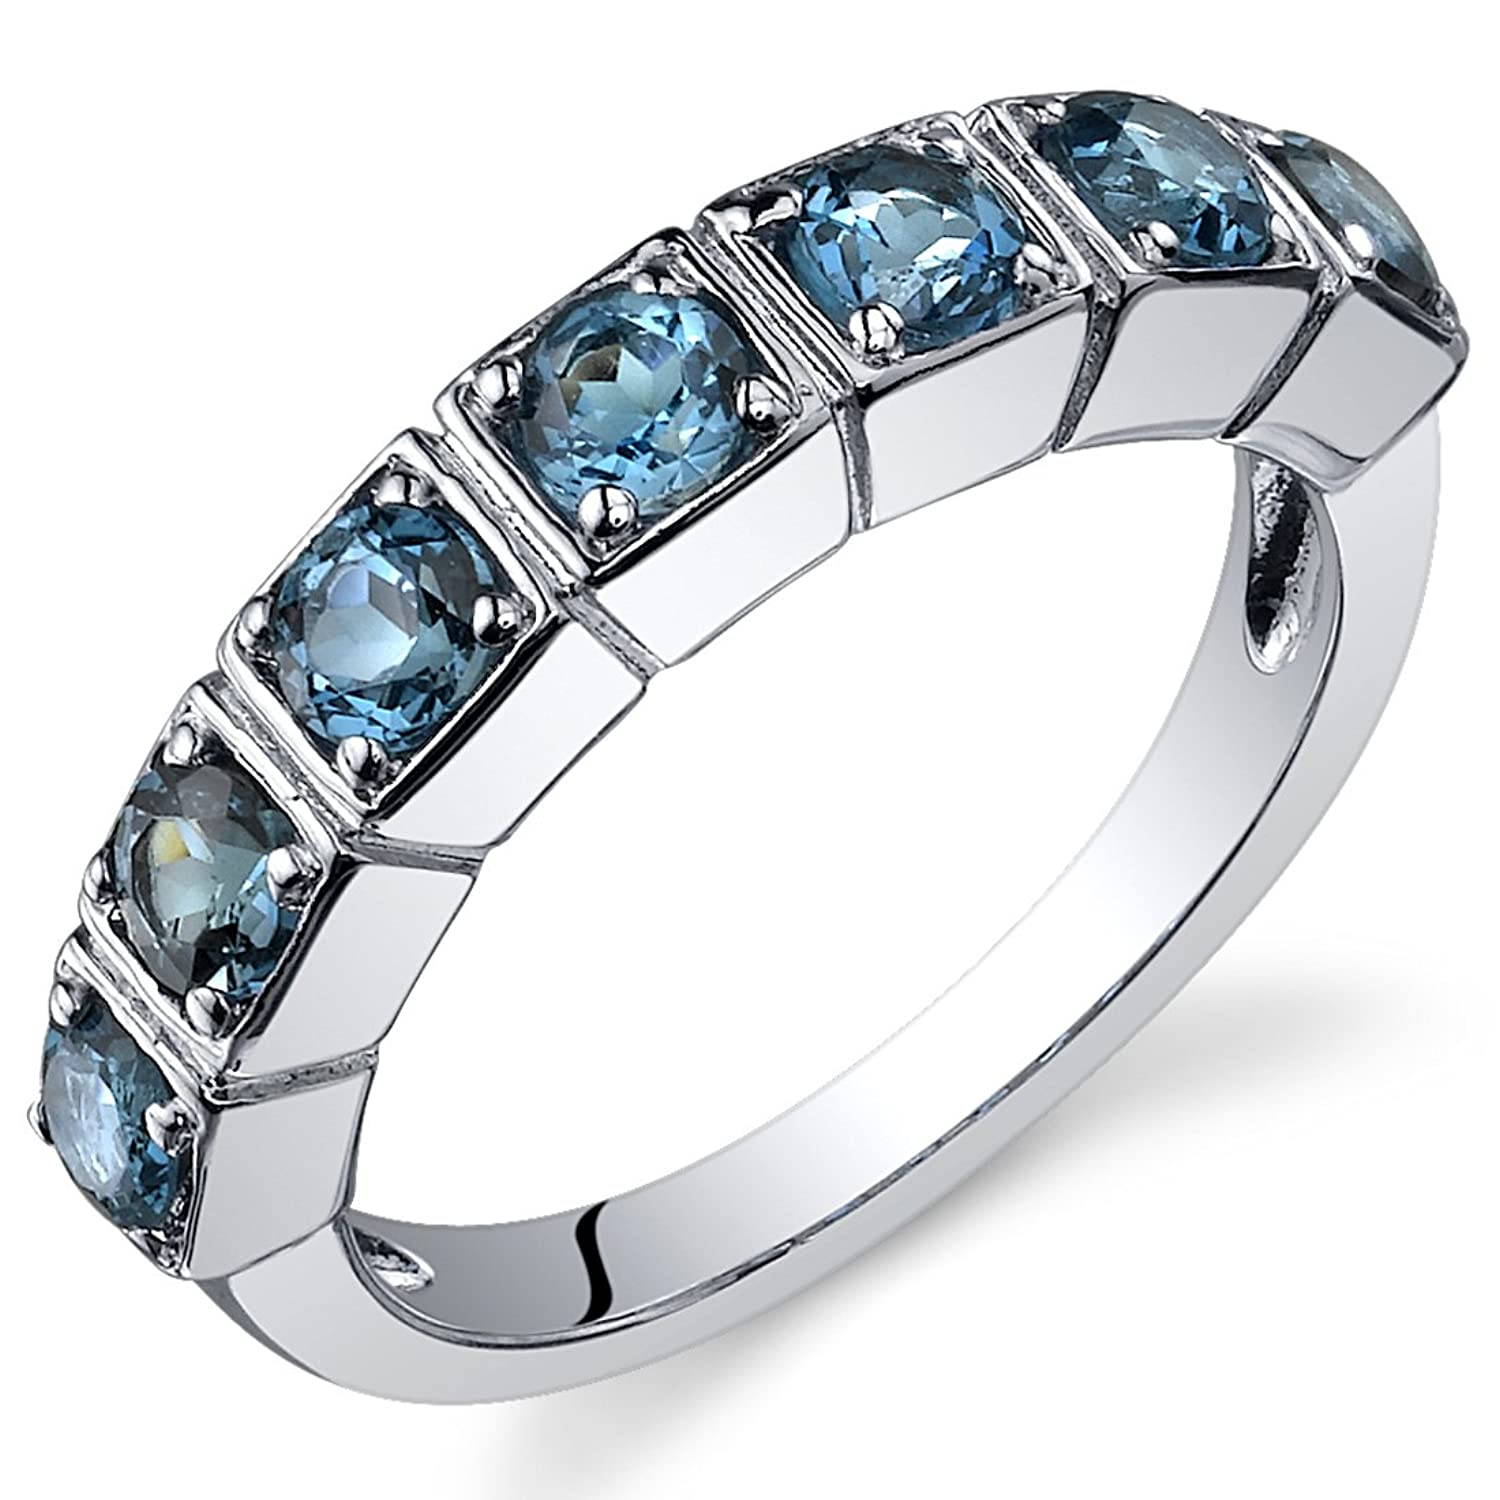 dp blue jewelrypalace created amazon ring kate sterling princess sapphire silver com rings middleton diana engagement stone